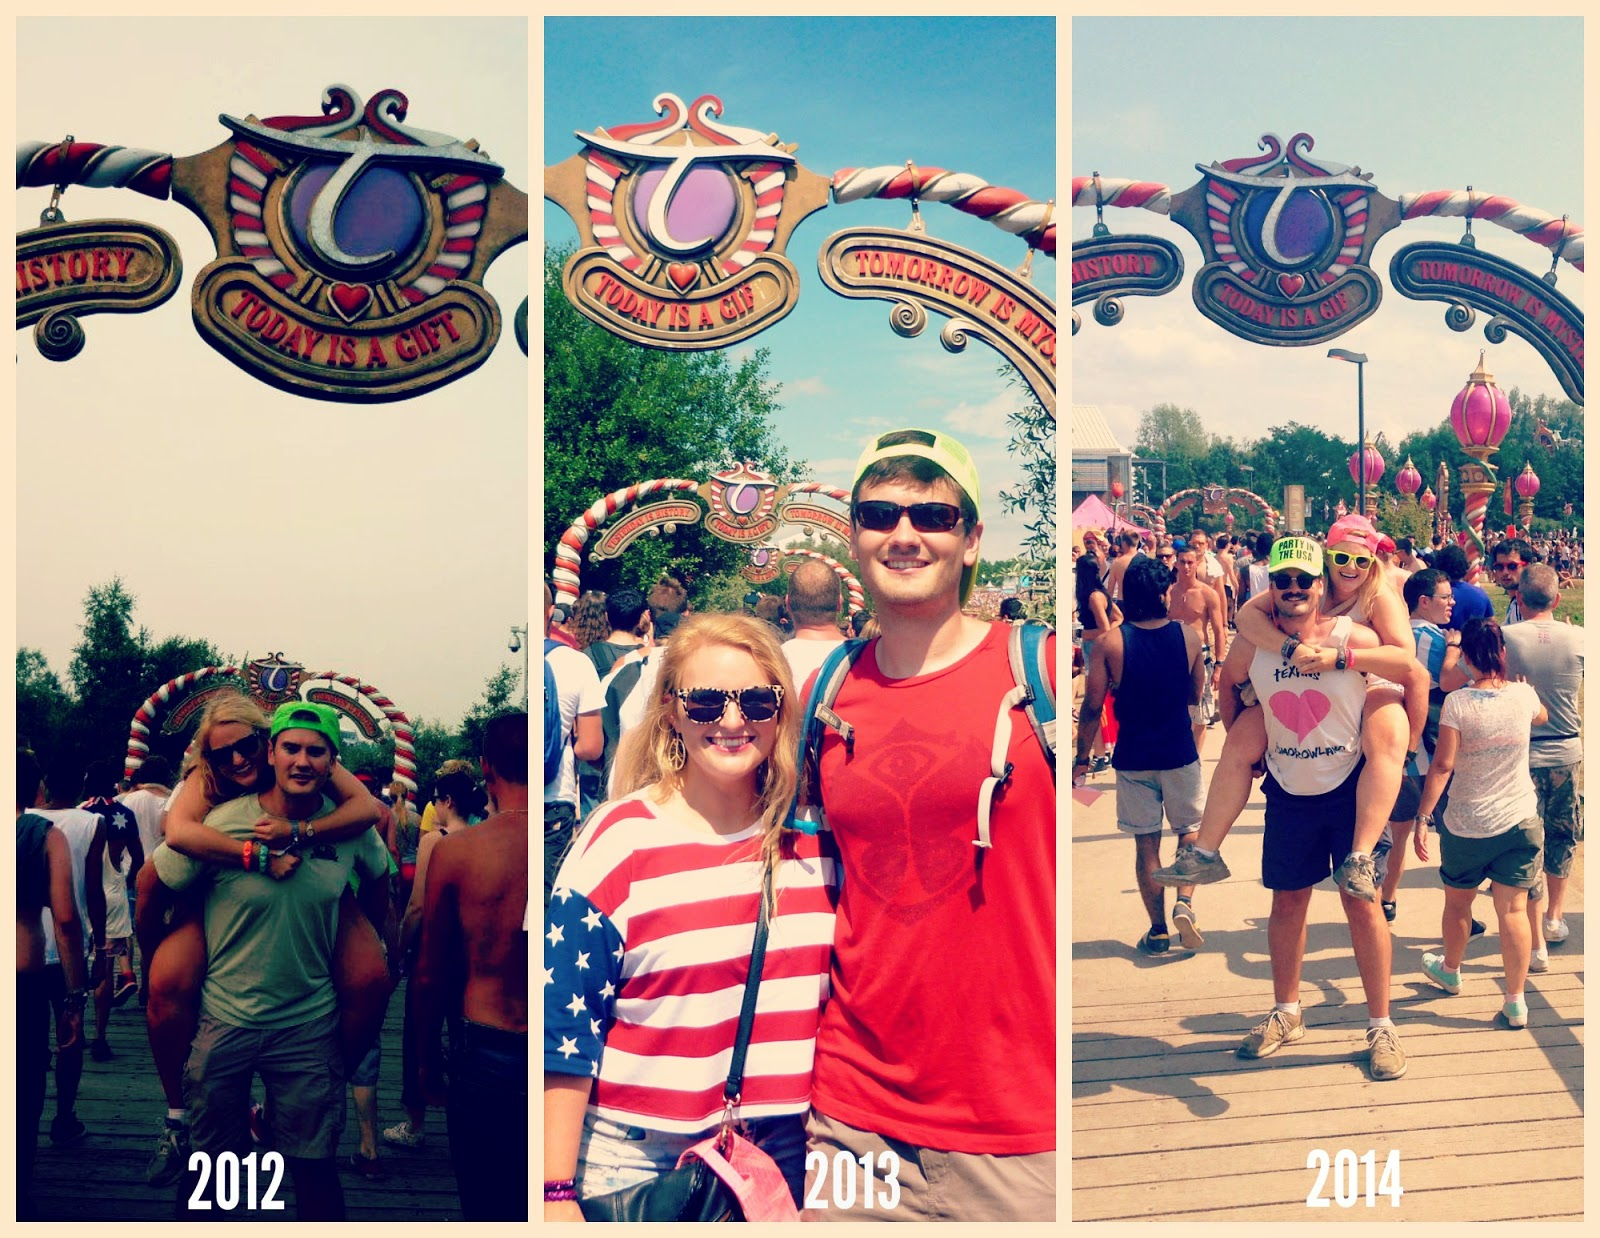 Tomorrowland through the years